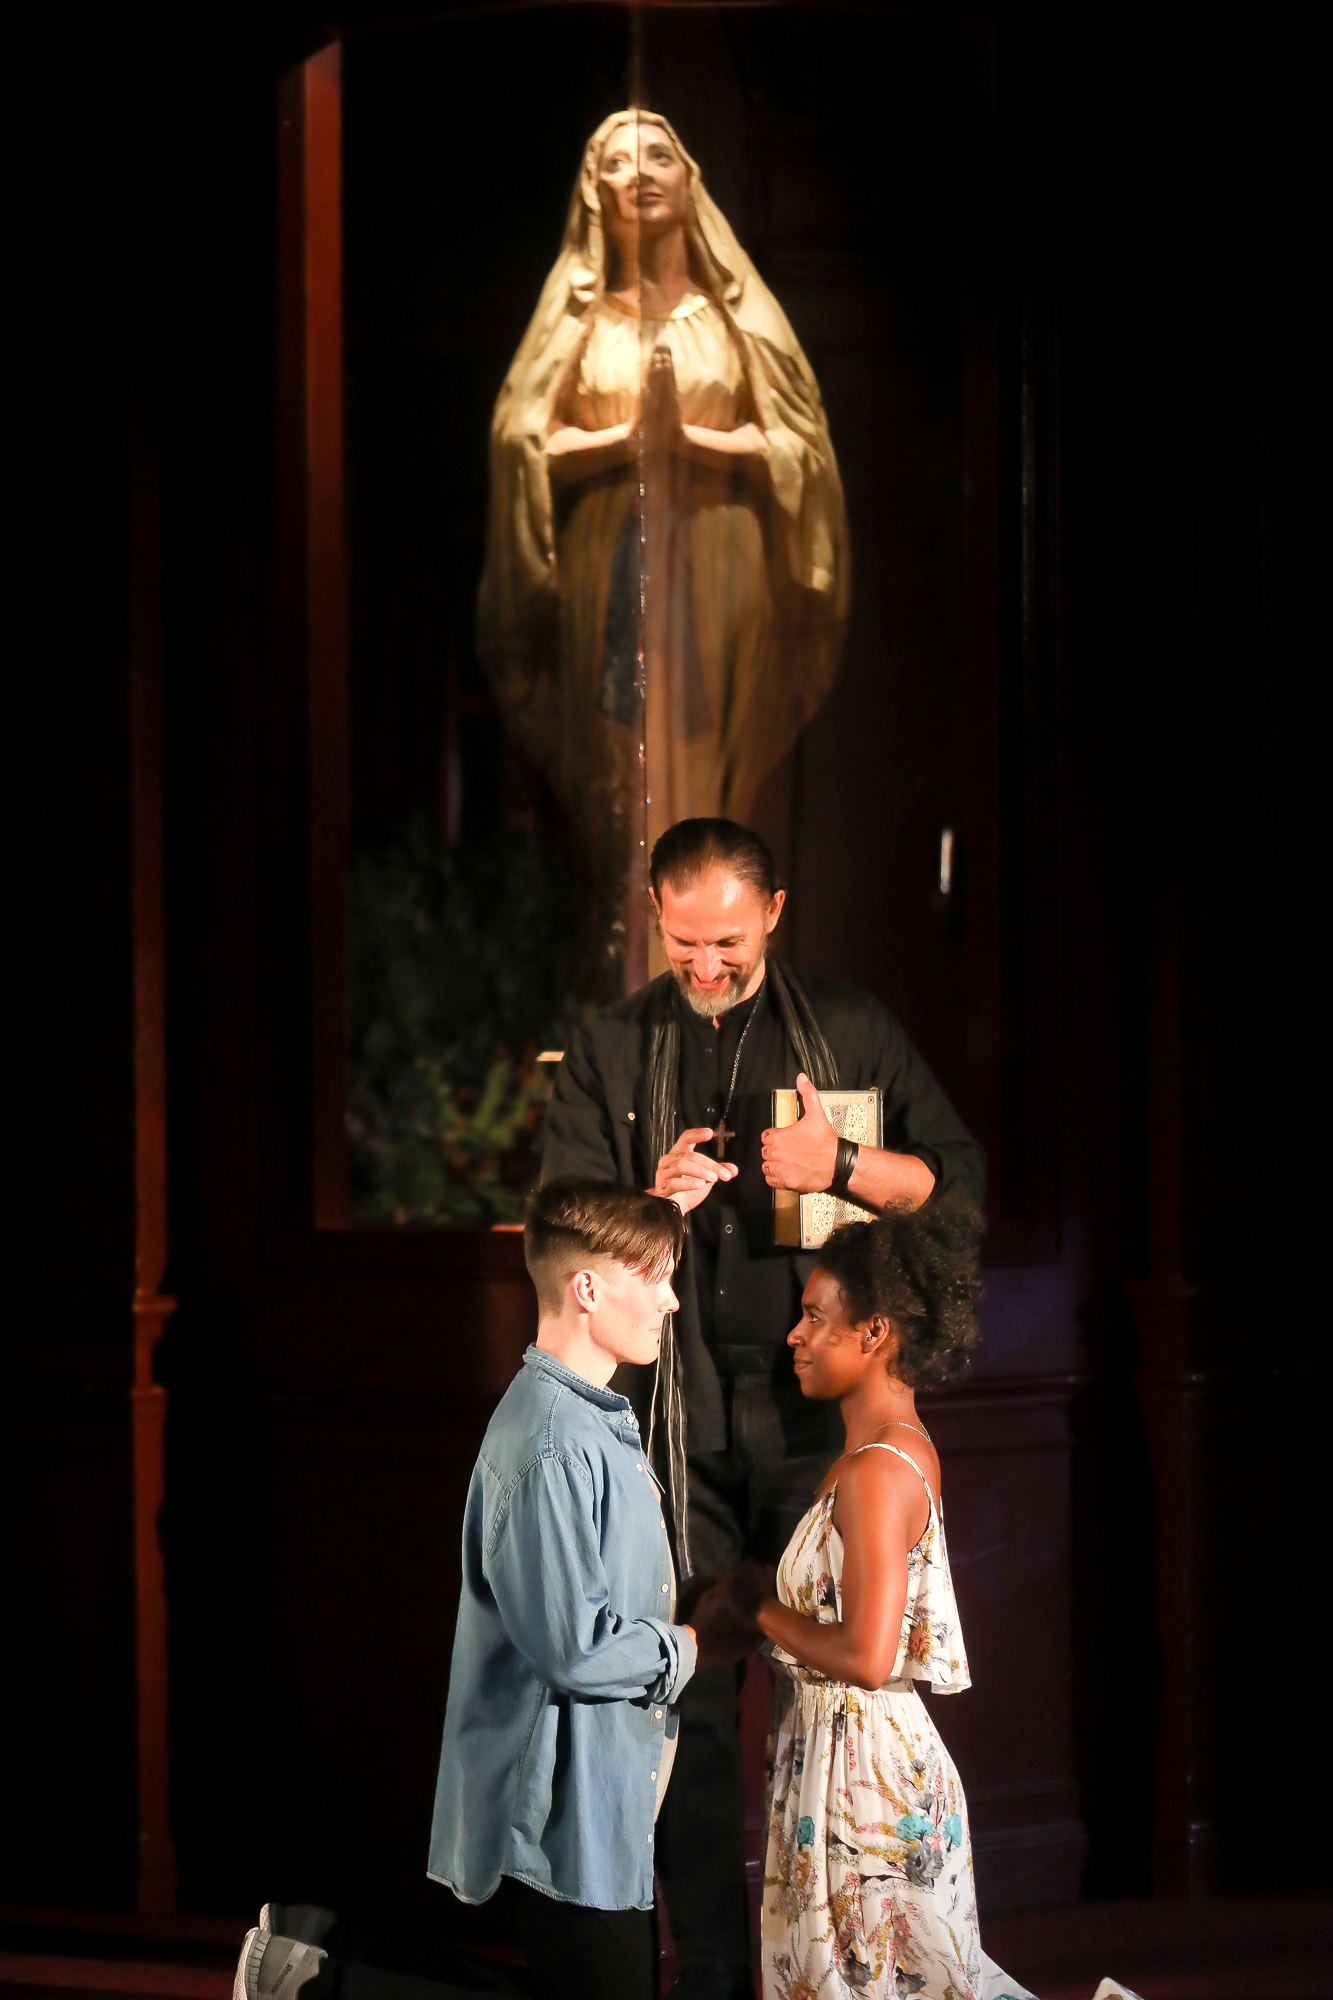 Photo of Ron Menzel as Friar Laurence, Danaya Esperanza as Juliet and Sam Lilja as Romeo in Romeo & Juliet by Tony Powell.